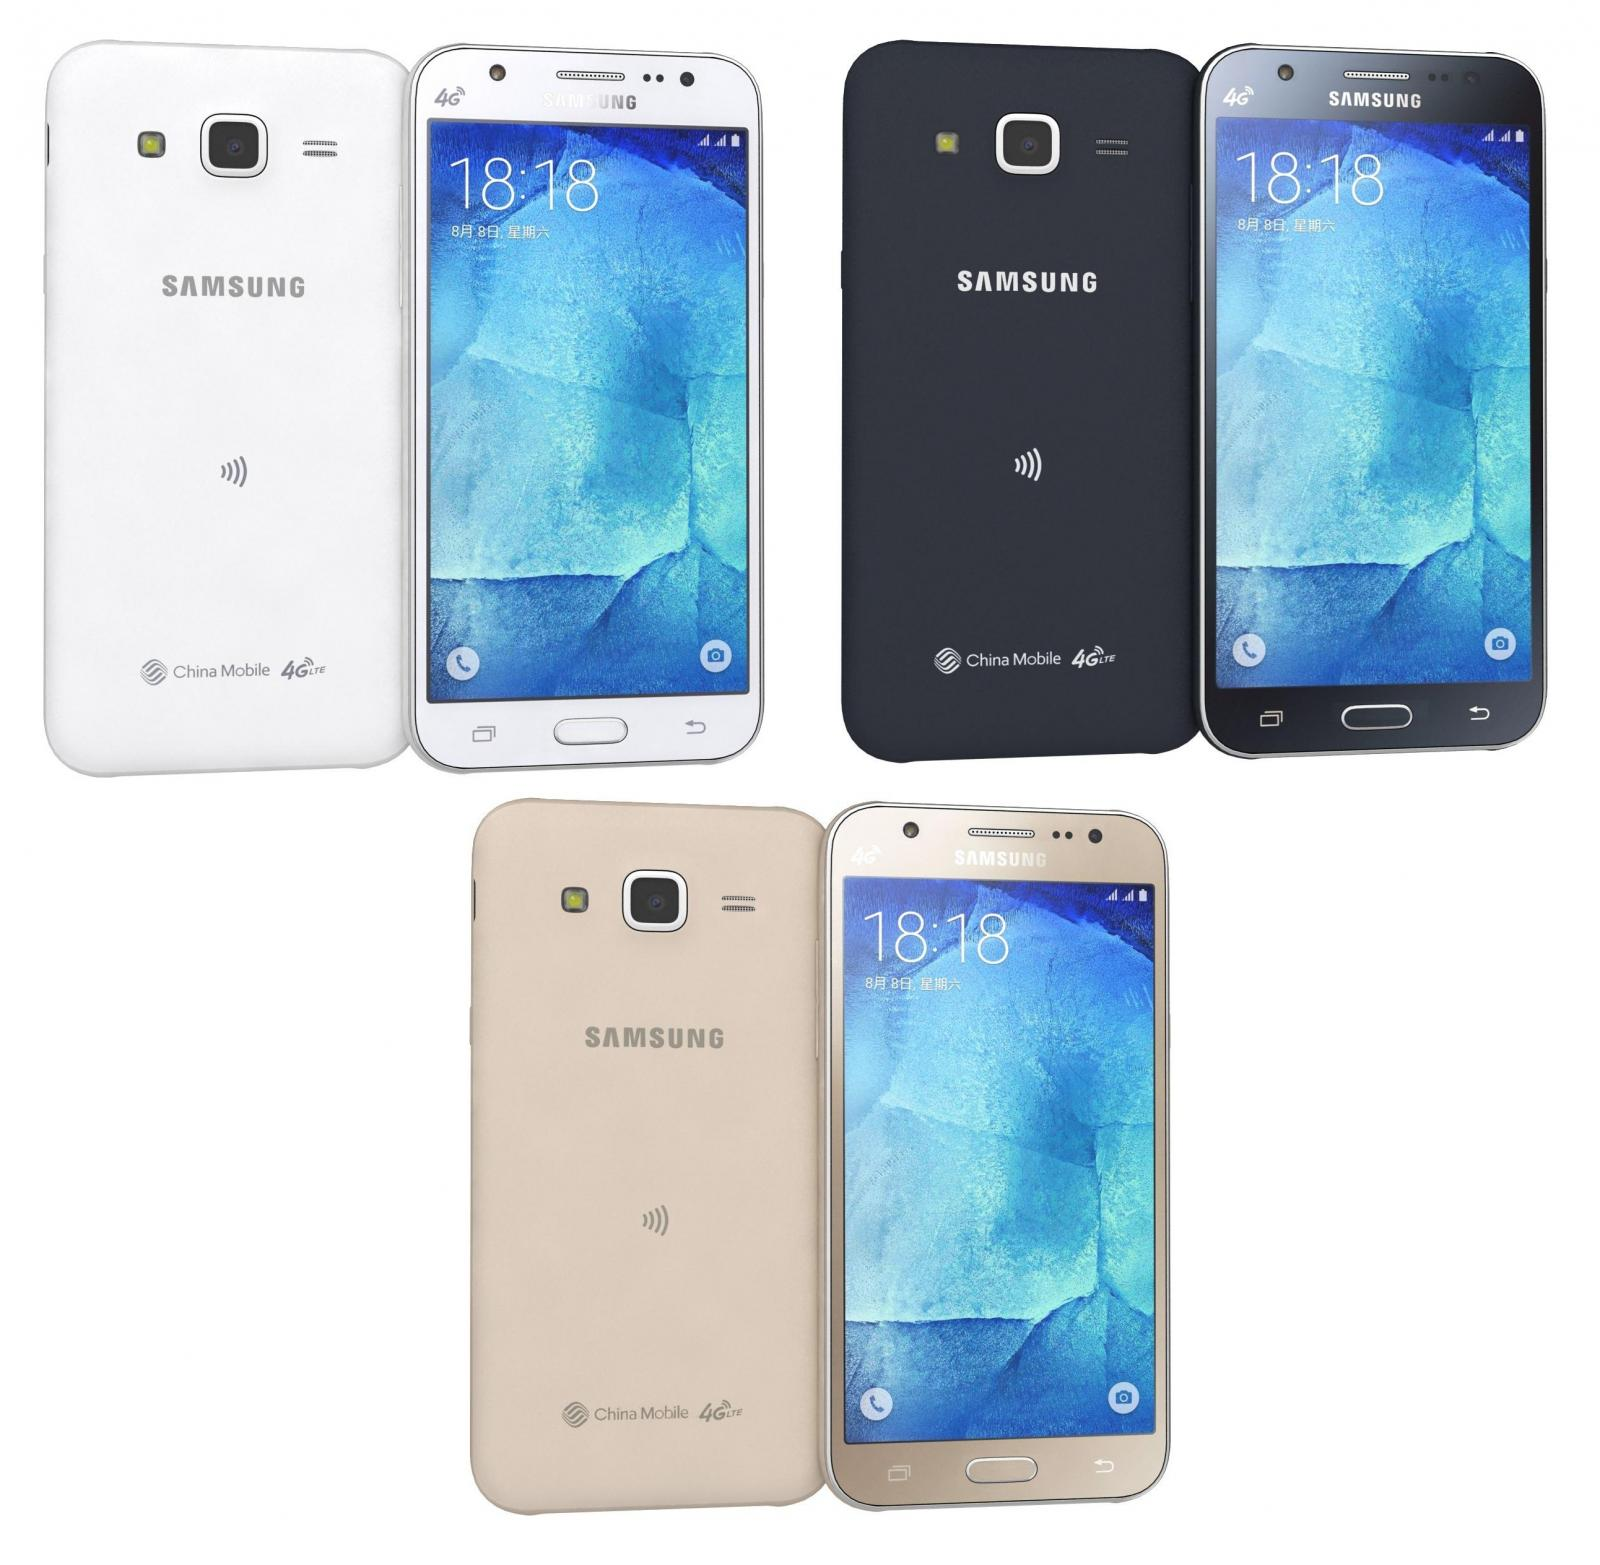 brand new samsung galaxy j5 4g 8gb 13mp dual sim smart. Black Bedroom Furniture Sets. Home Design Ideas